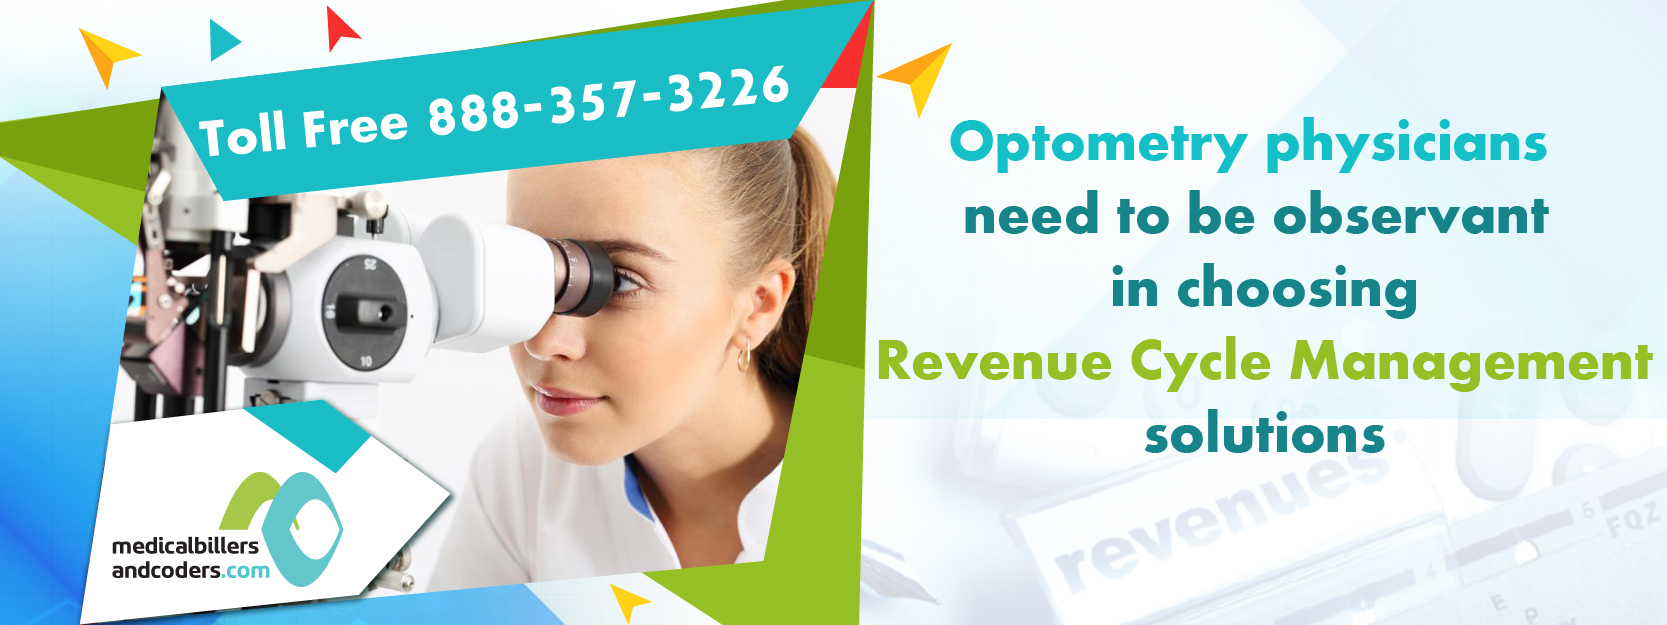 Revenue-Cycle-Management-RCM-solutions-for-Optometry-physicians